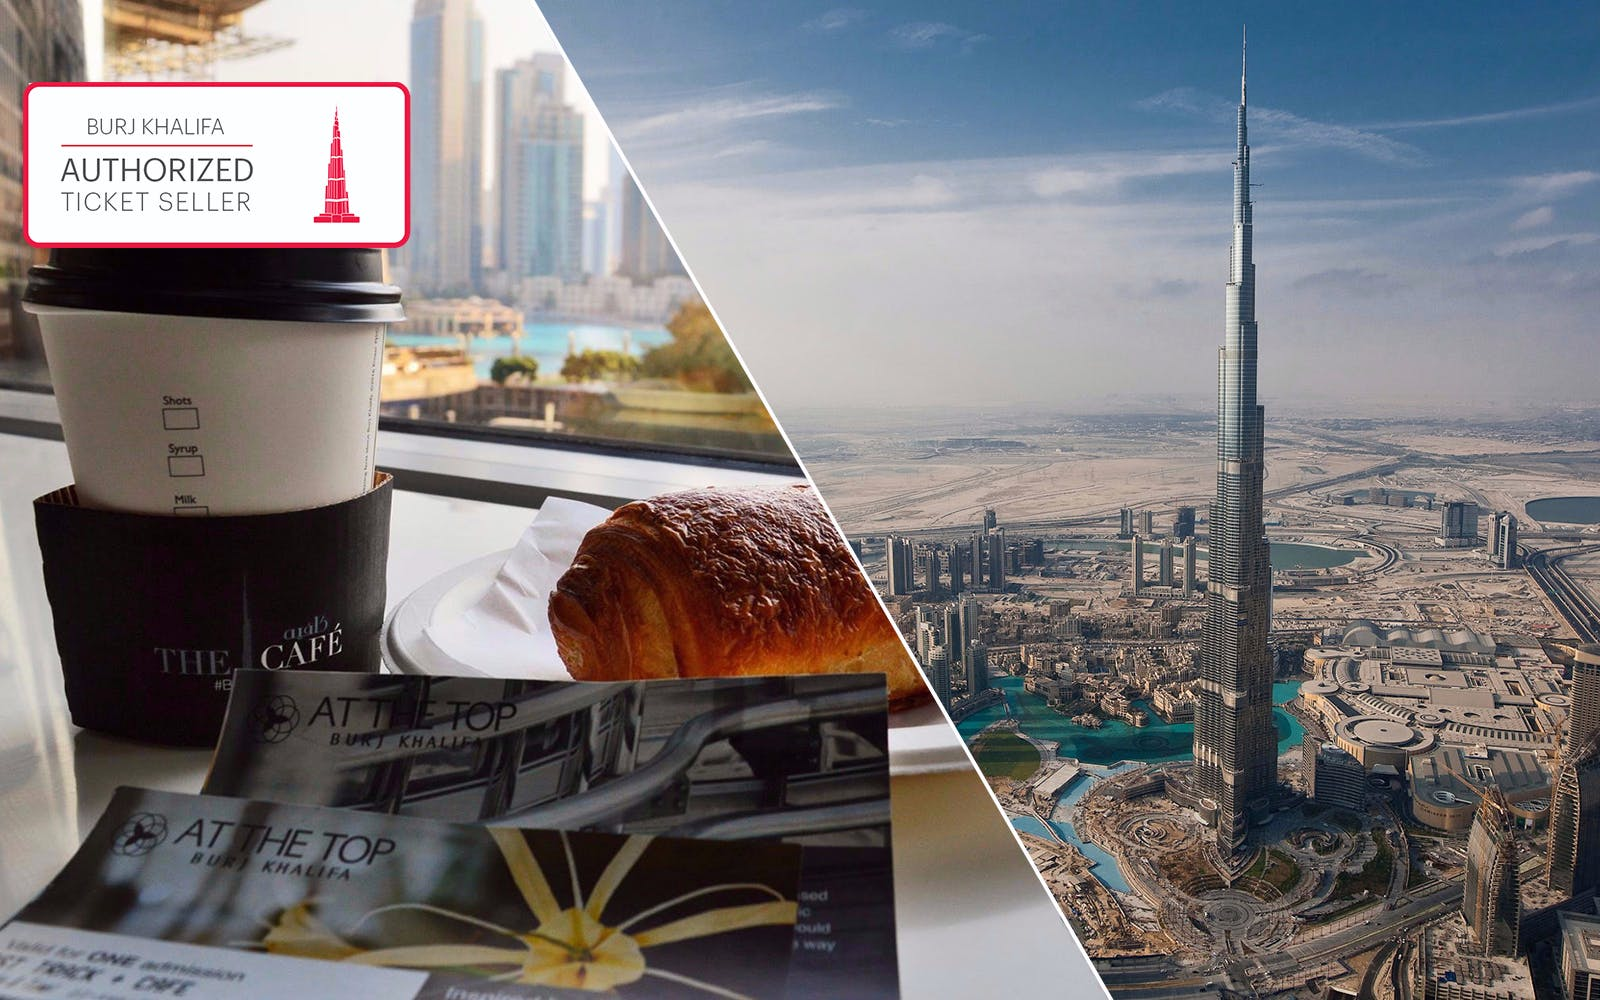 Burj Khalifa + Pastry & Coffee At The Café